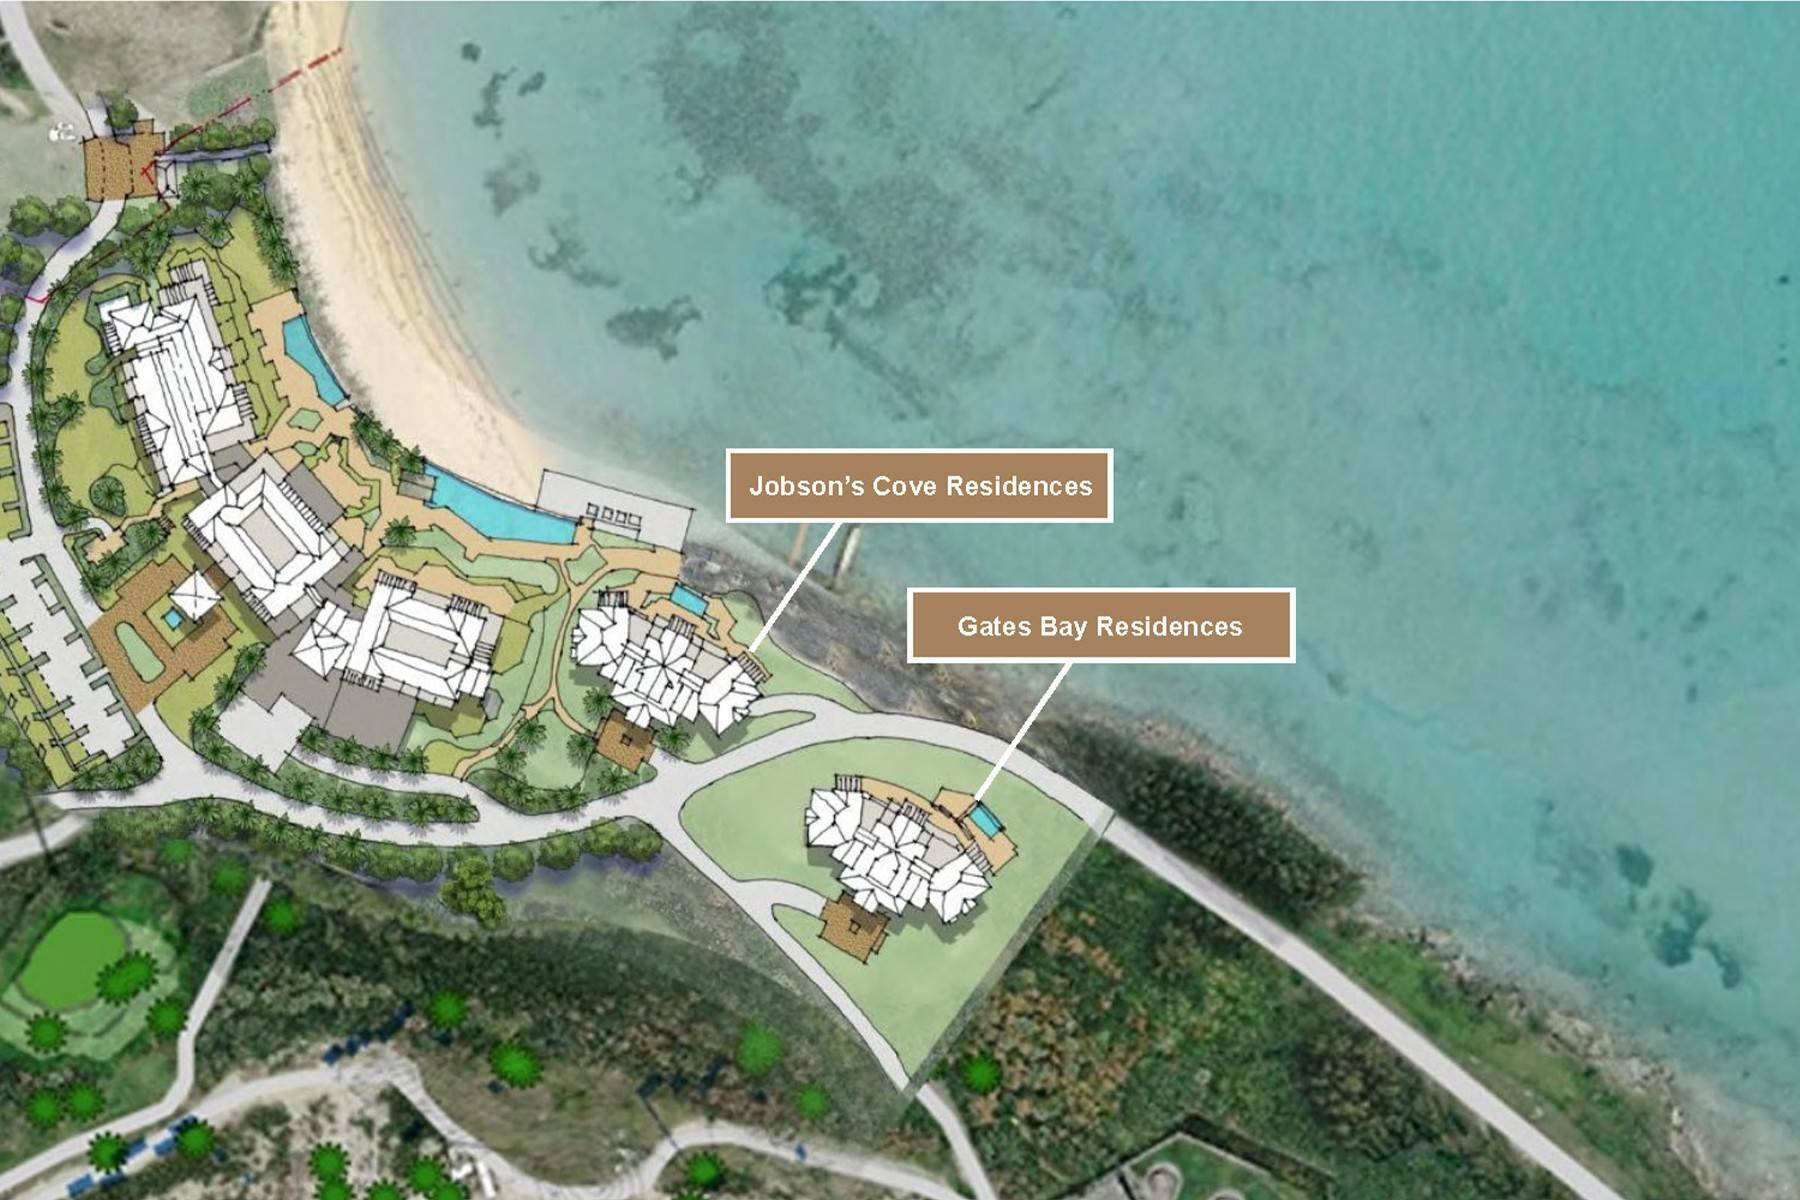 21. Condo / Townhouse / Flat for Sale at St. Regis Bermuda Residences - Gates Bay 3B St. Catherine's Beach St Georges Parish, GE03 Bermuda